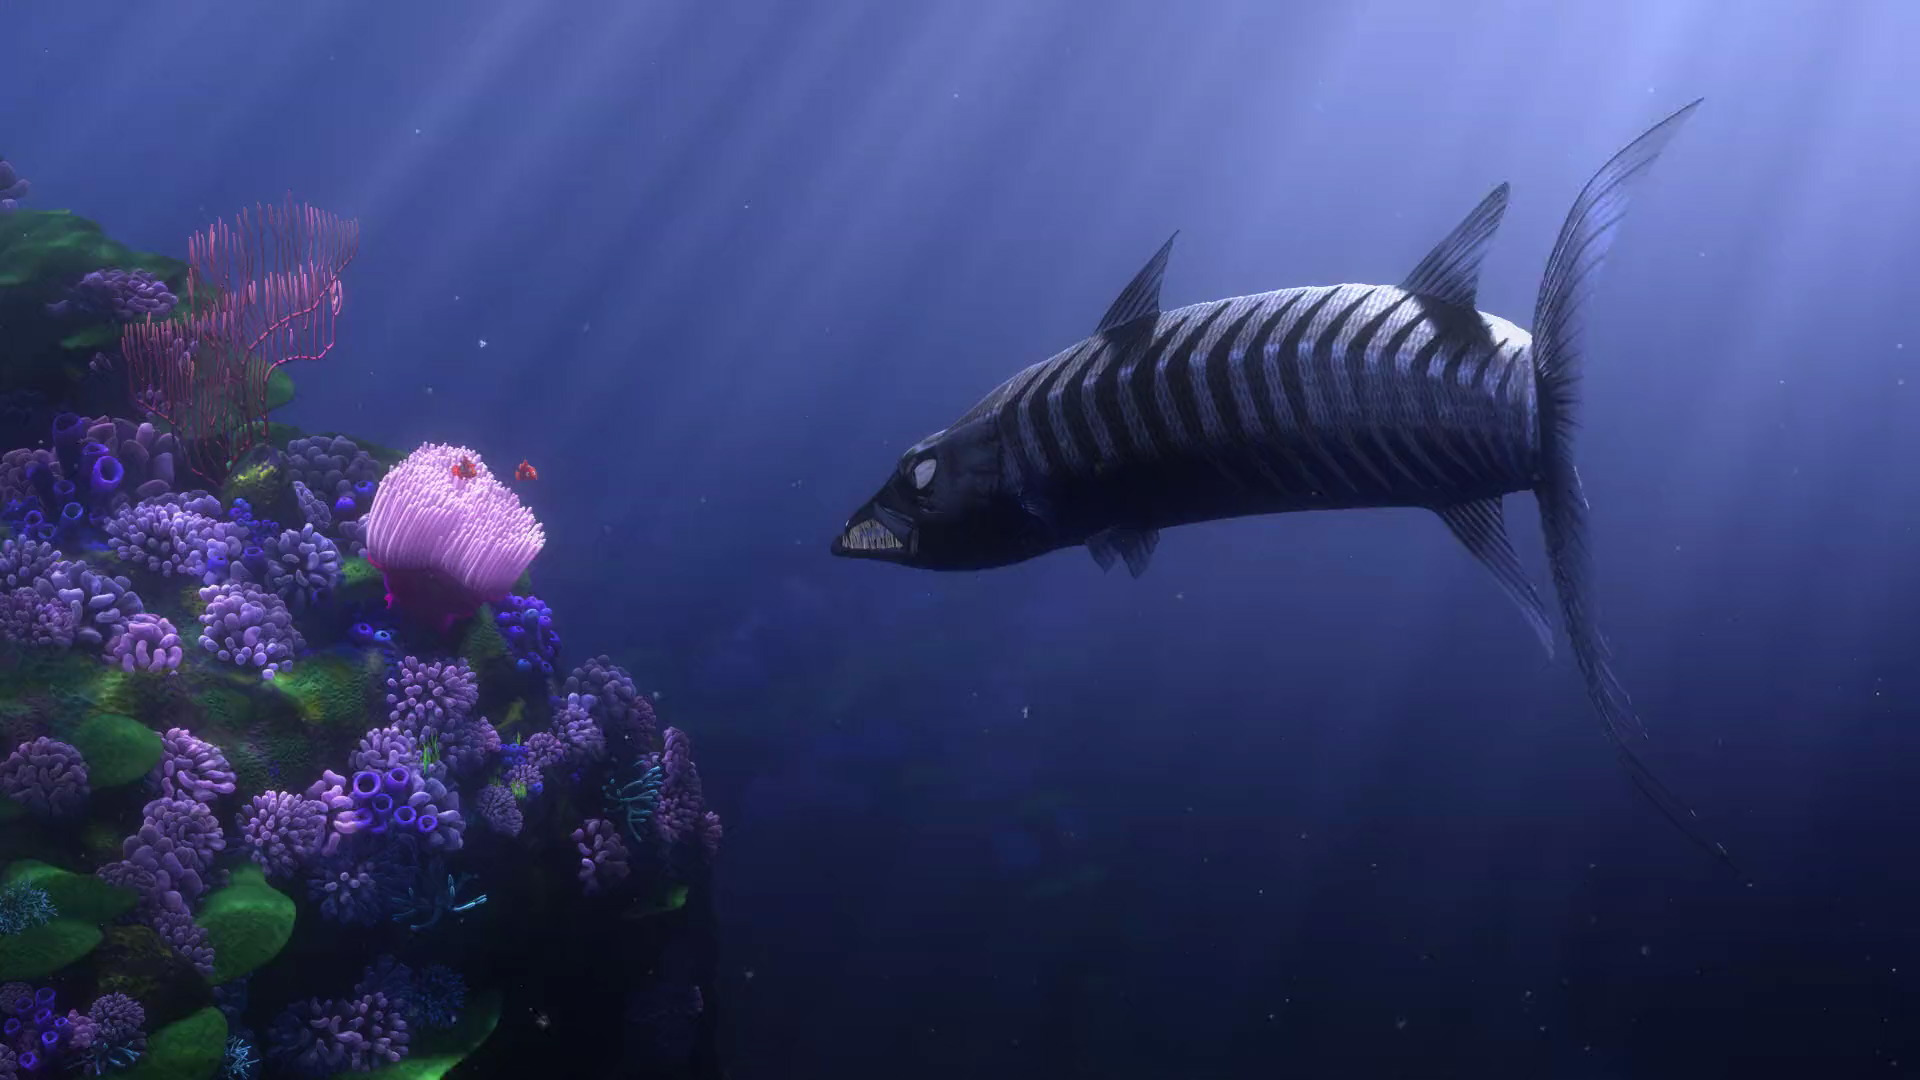 The Pixar Perspective on The Pixar Moment in 'Finding Nemo'